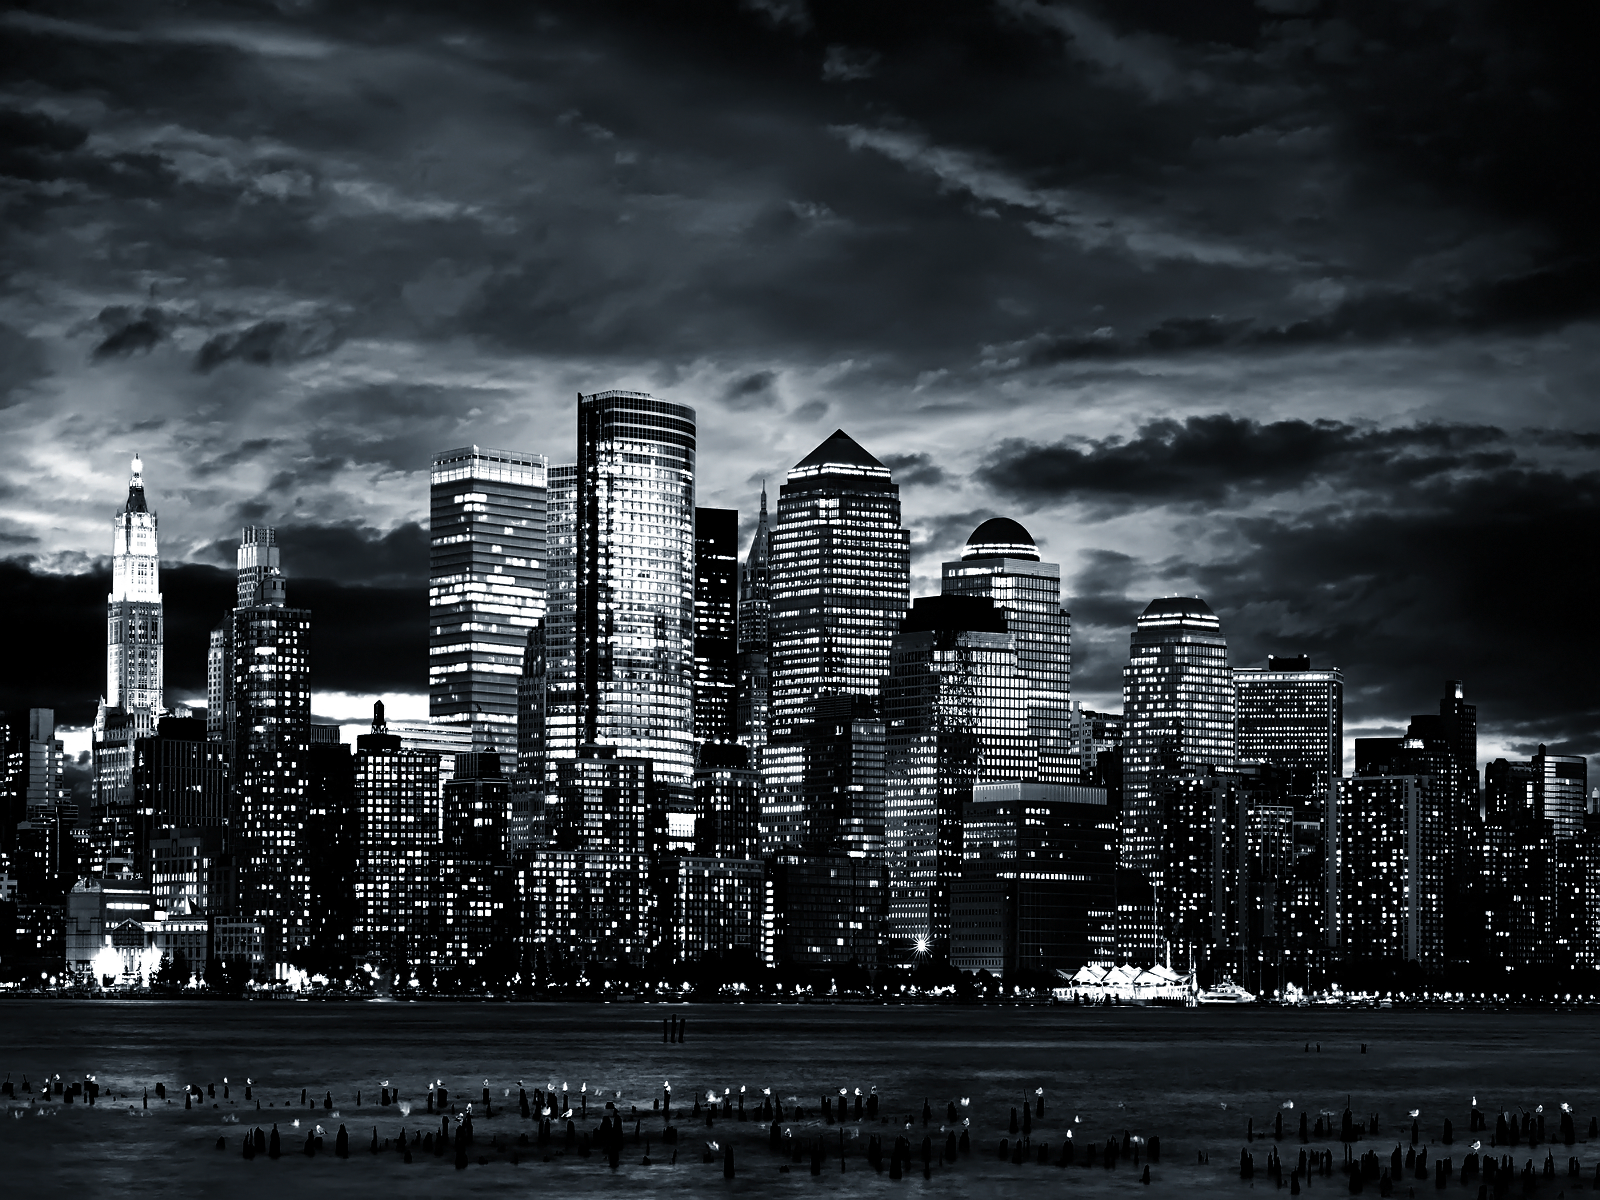 Black and White City by the Sea wallpaper II Some Days 1600x1200